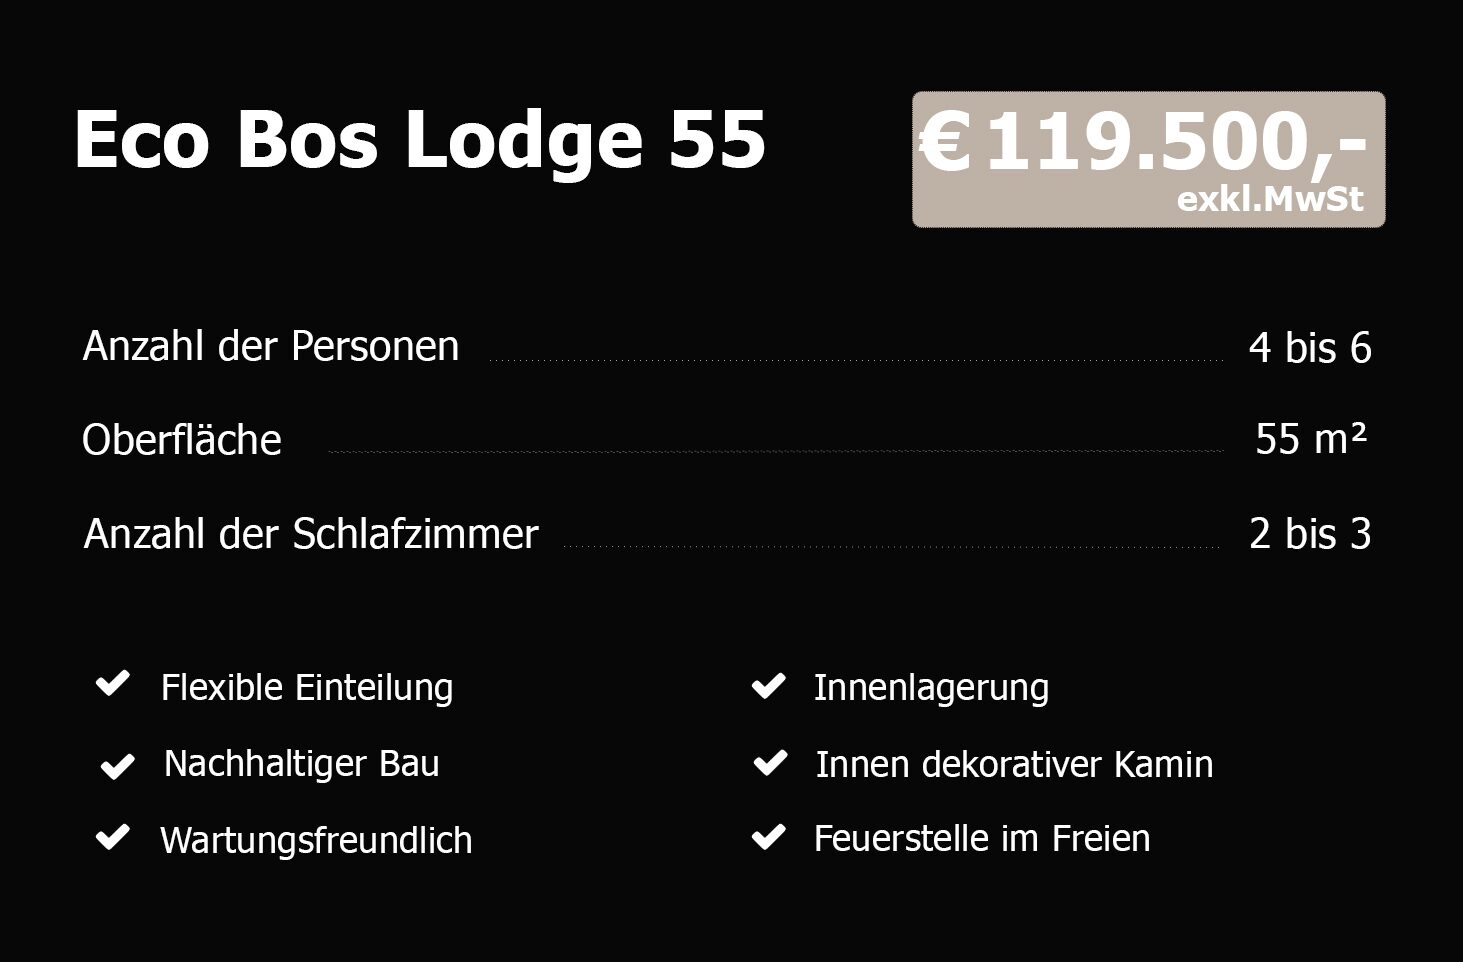 Eco Bos Lodge 55